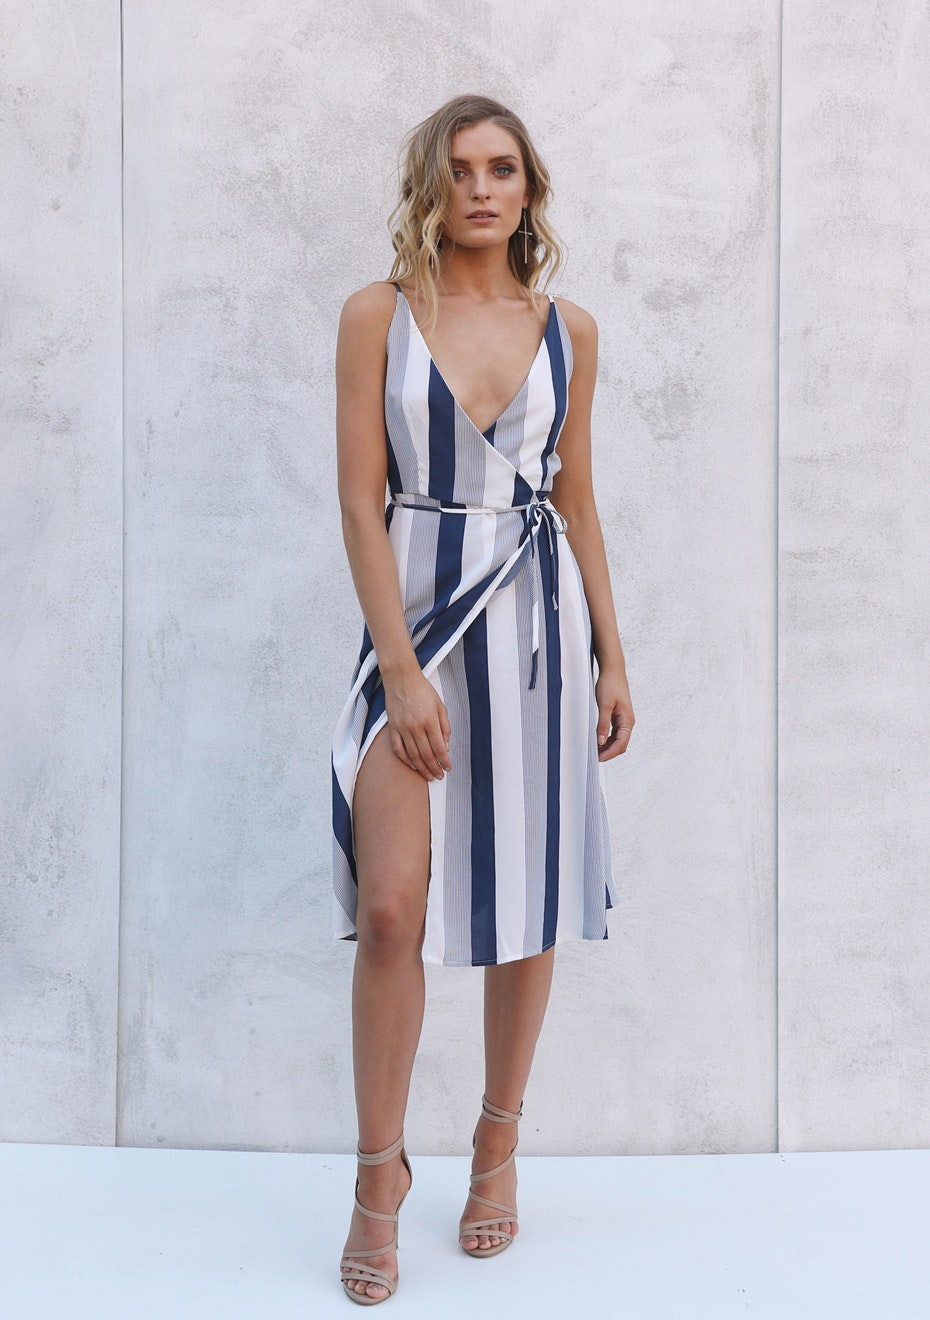 Madison - CARRIE WRAP DRESS - NAVY STRIPE